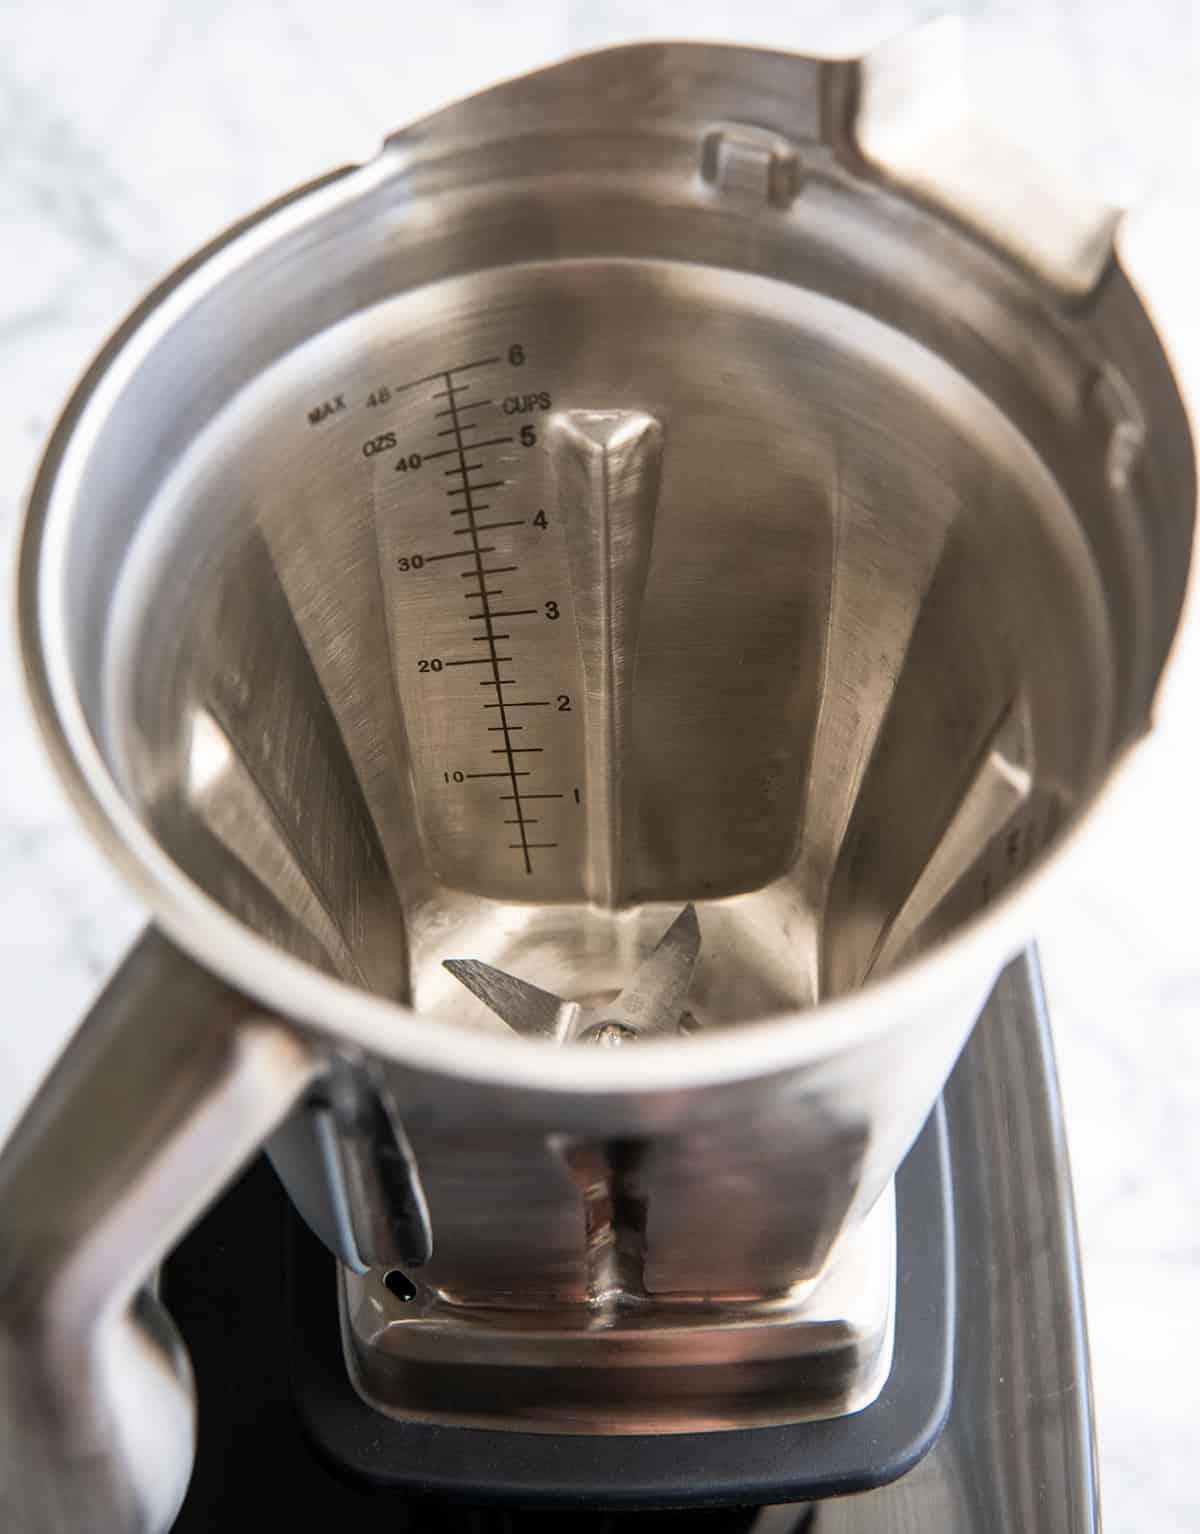 View of the inside of the Vitamix stainless steel blending container & measurement marks